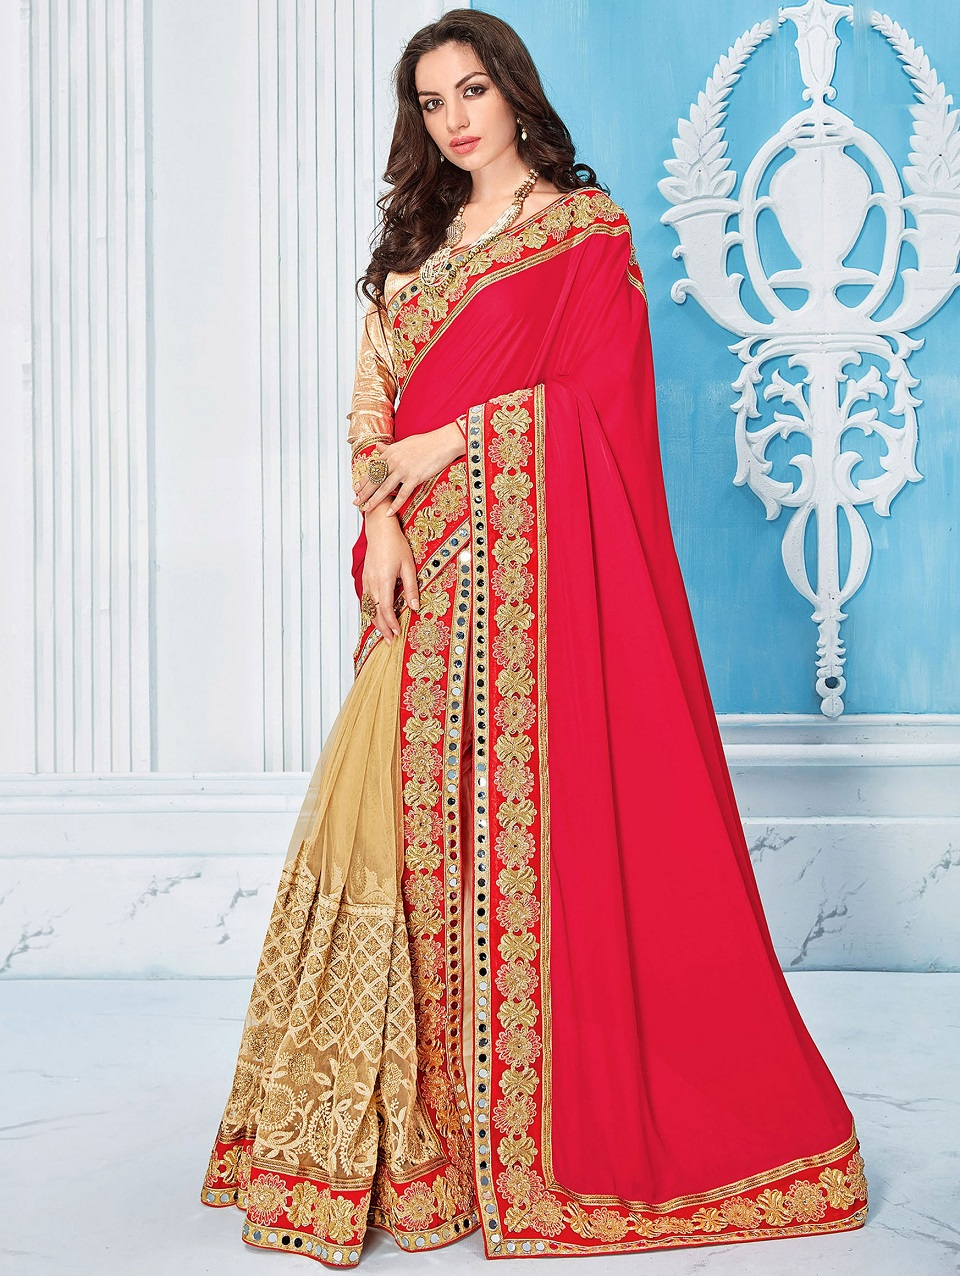 httpwww.saree.comsareewedding-sarees